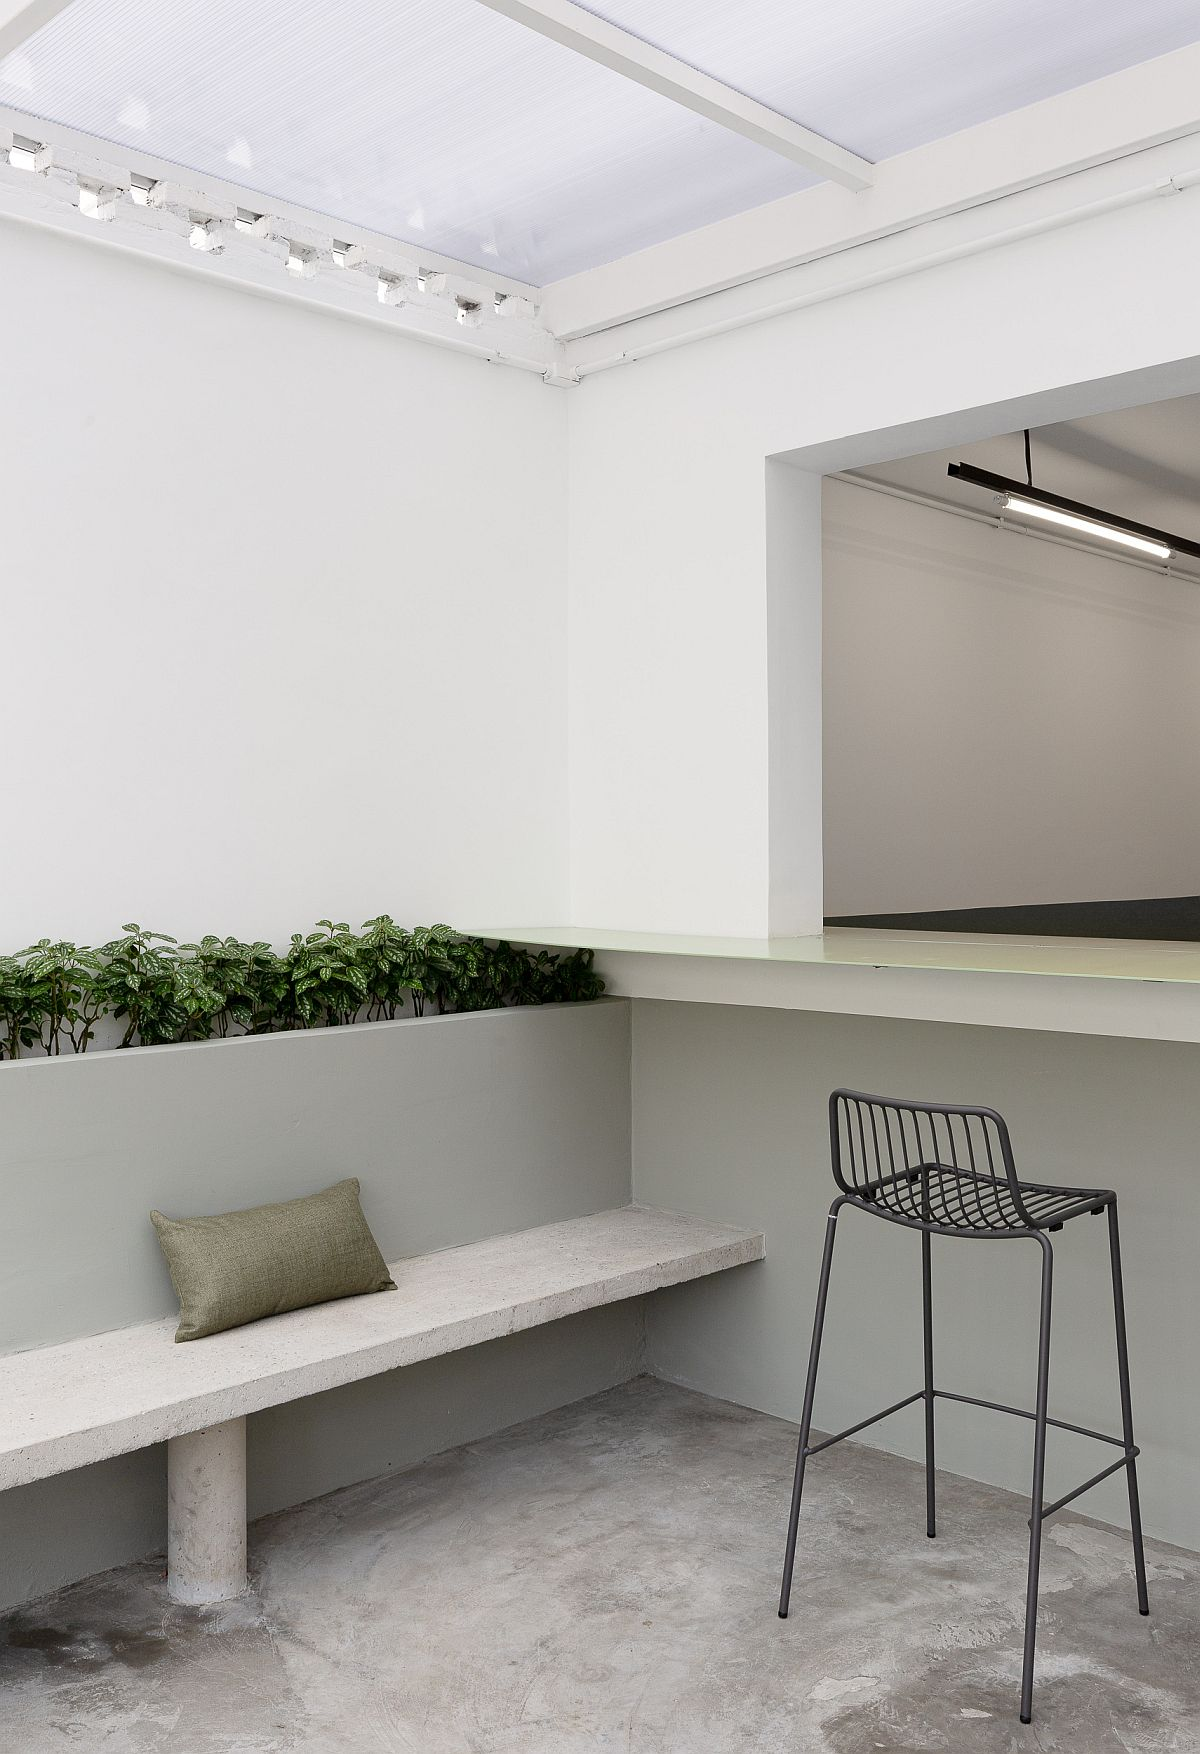 Natural-light-and-greenery-bring-freshness-to-the-restaurant-interior-91168